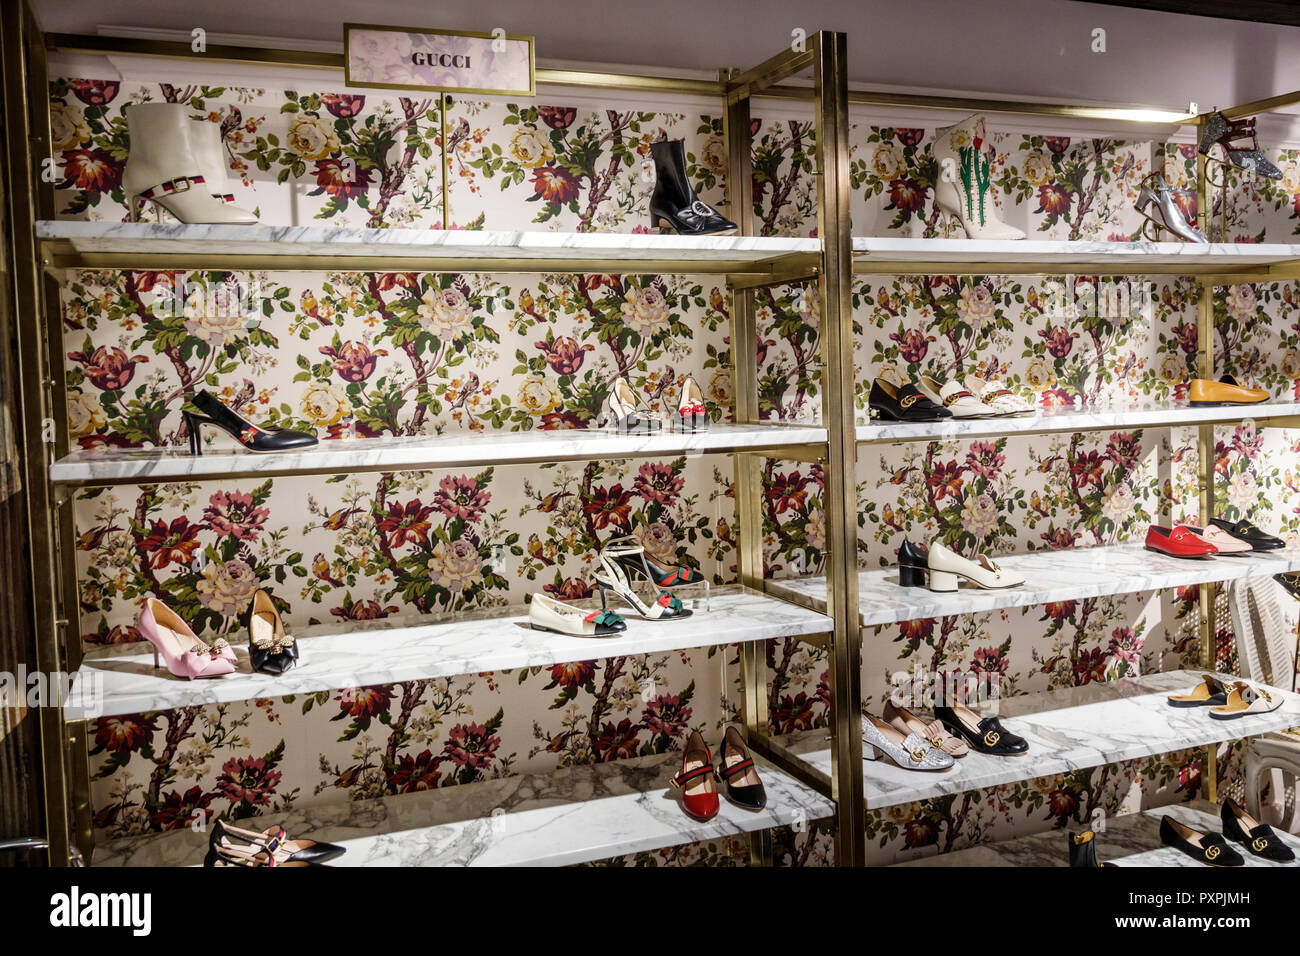 d3c423883bb London England United Kingdom Great Britain Soho Liberty Department Store  shopping luxury brands upmarket women s shoes designer Gucci display sale